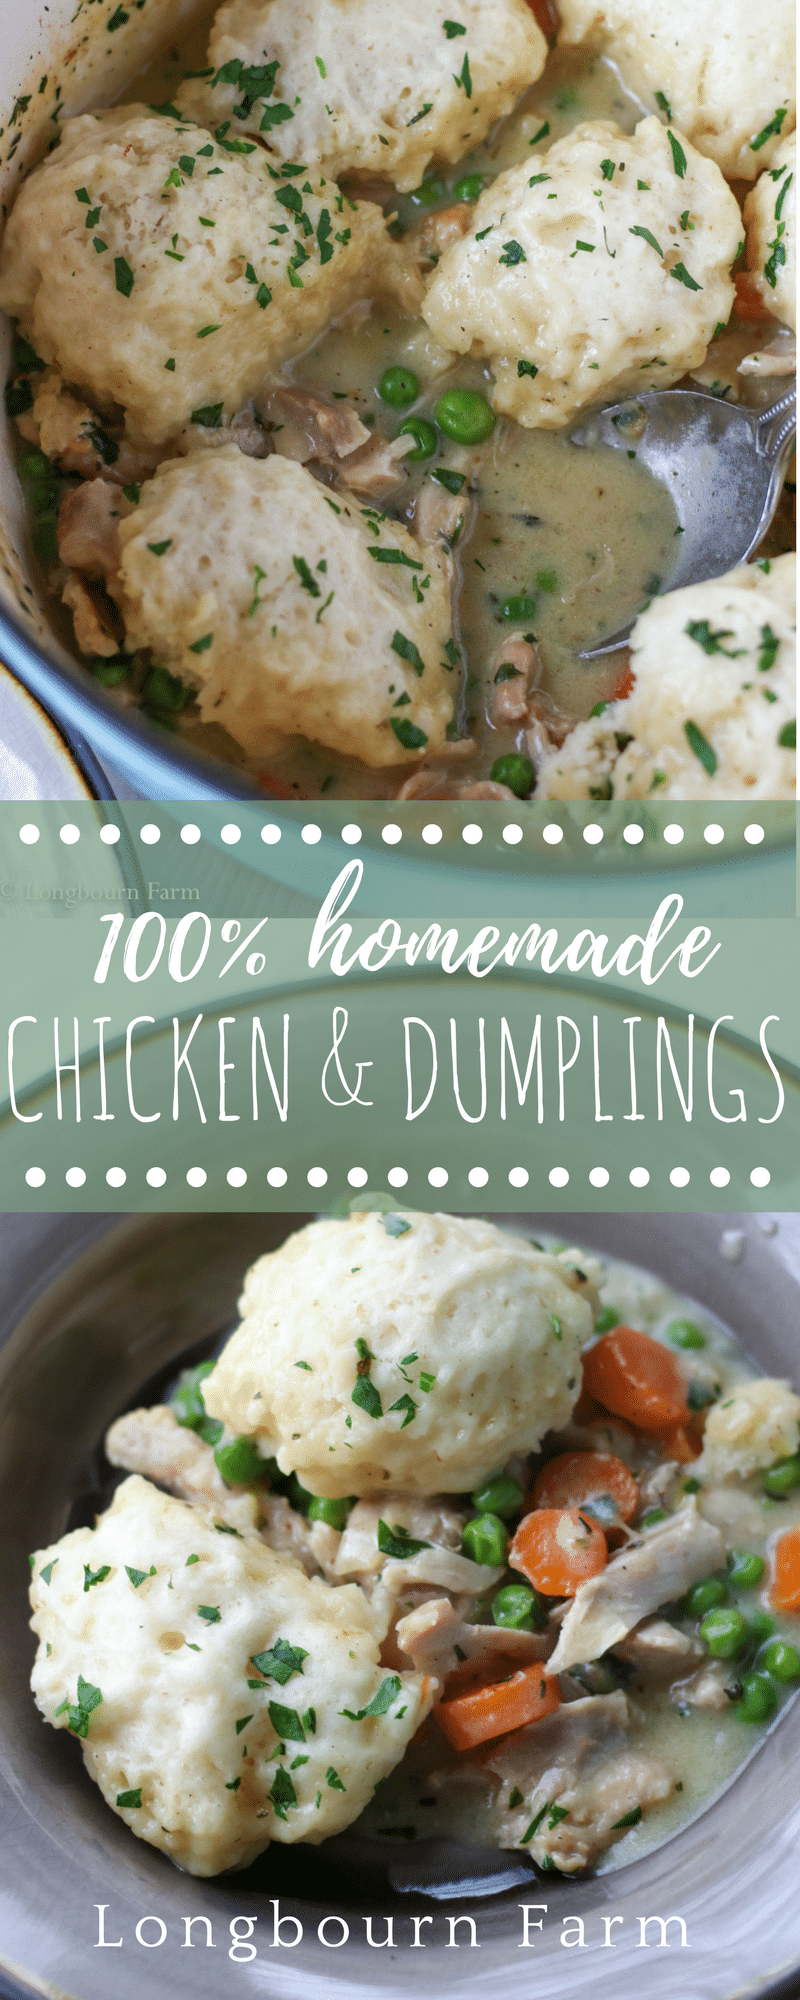 This easy chicken and dumplings recipe is totally homemade and is sure to become a family favorite. Packed with flavor, juicy meat, and tender veggies! via @longbournfarm